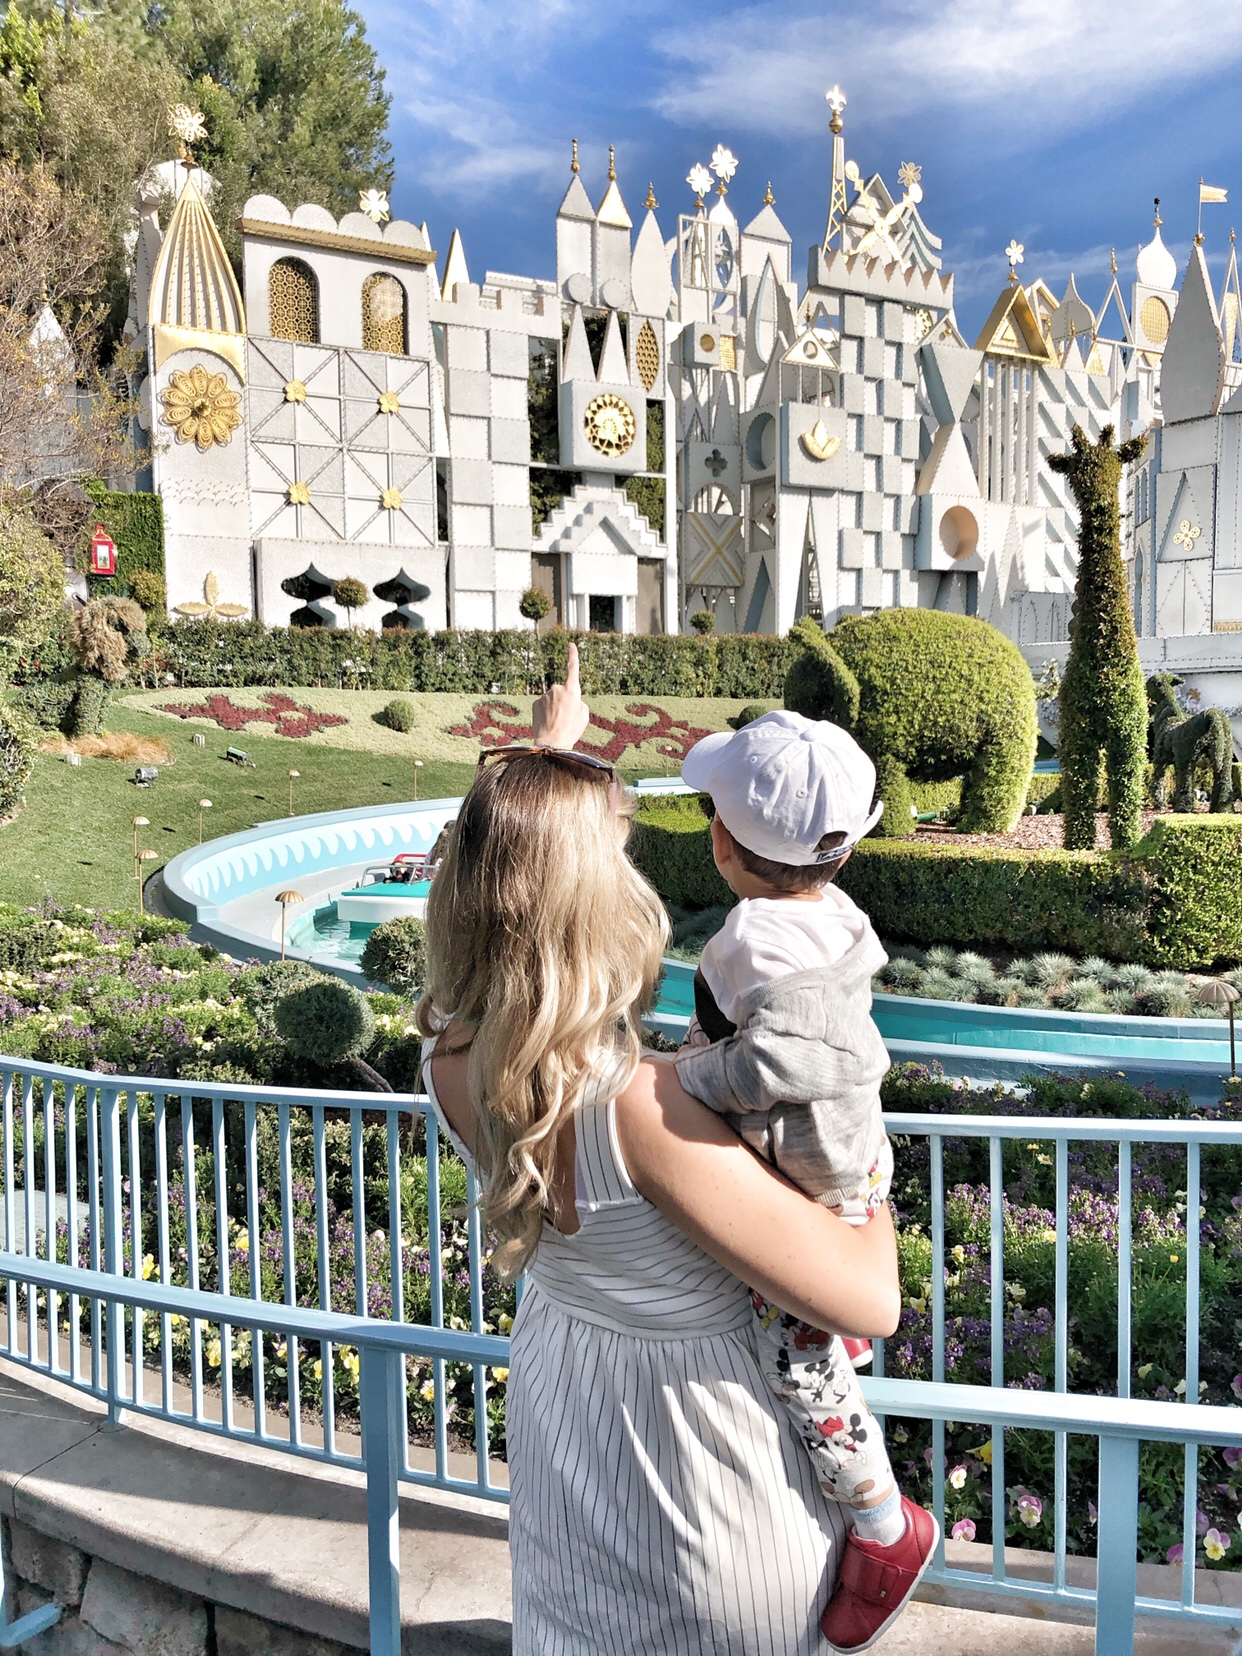 ae9dc5bc92 Top 10 Disneyland Rides for Toddlers and Ones to Avoid!